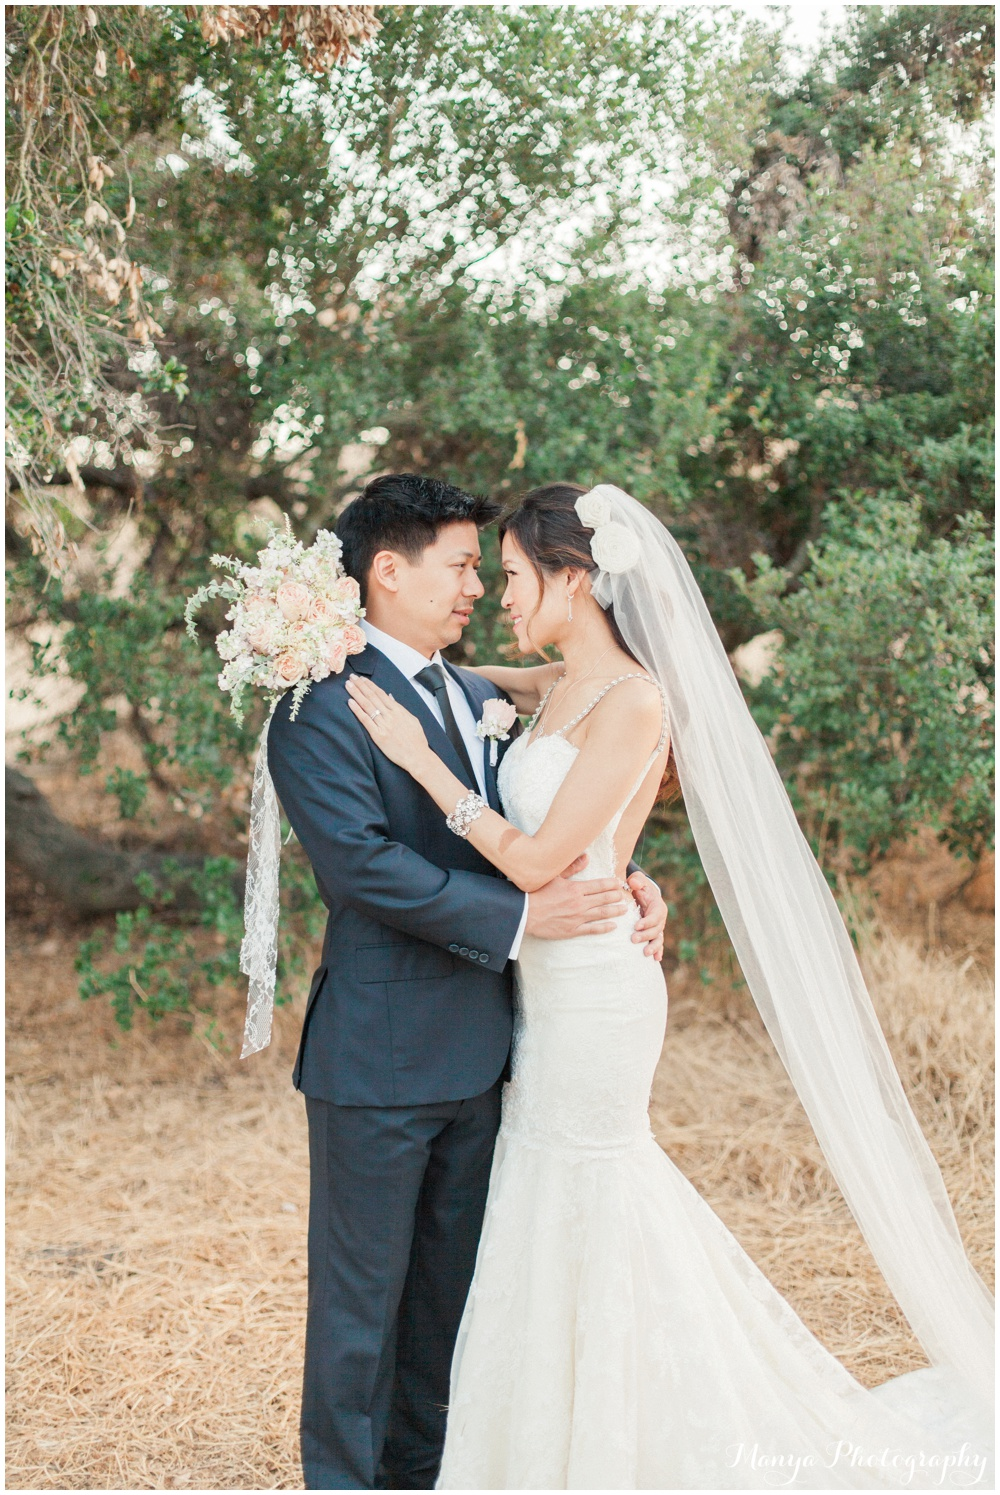 MandM_Wedding_Orange_County_Wedding_Photographer_Manya_Photography_Carbon_Thomas_F_Riley_Wilderness_Park__0057